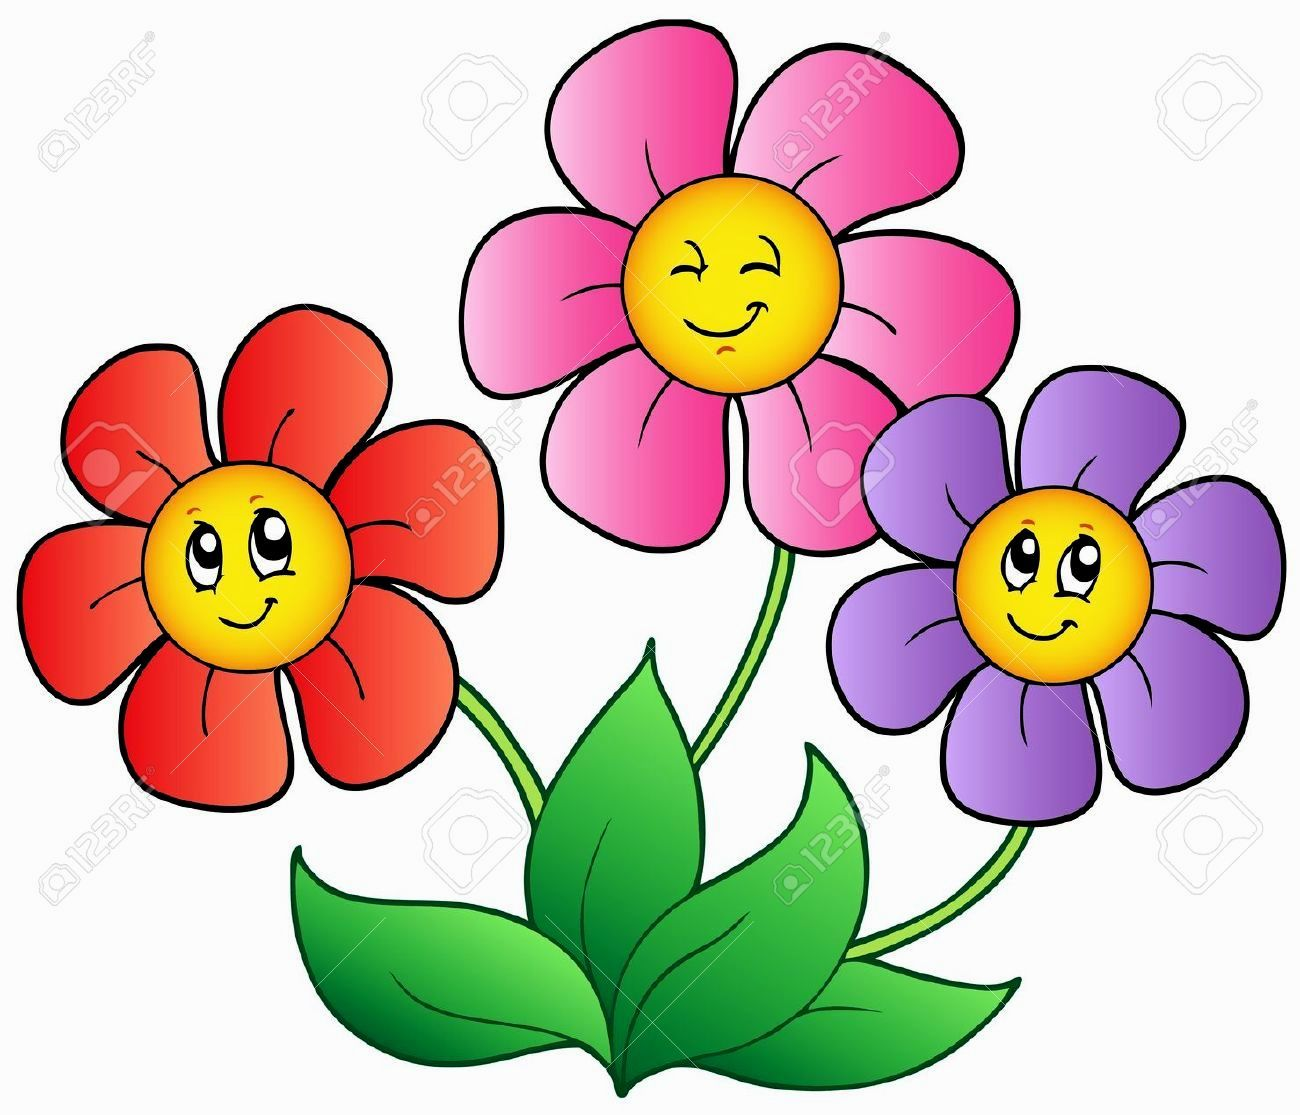 Pictures Of Cartoon Flowers  Visit Website for More.